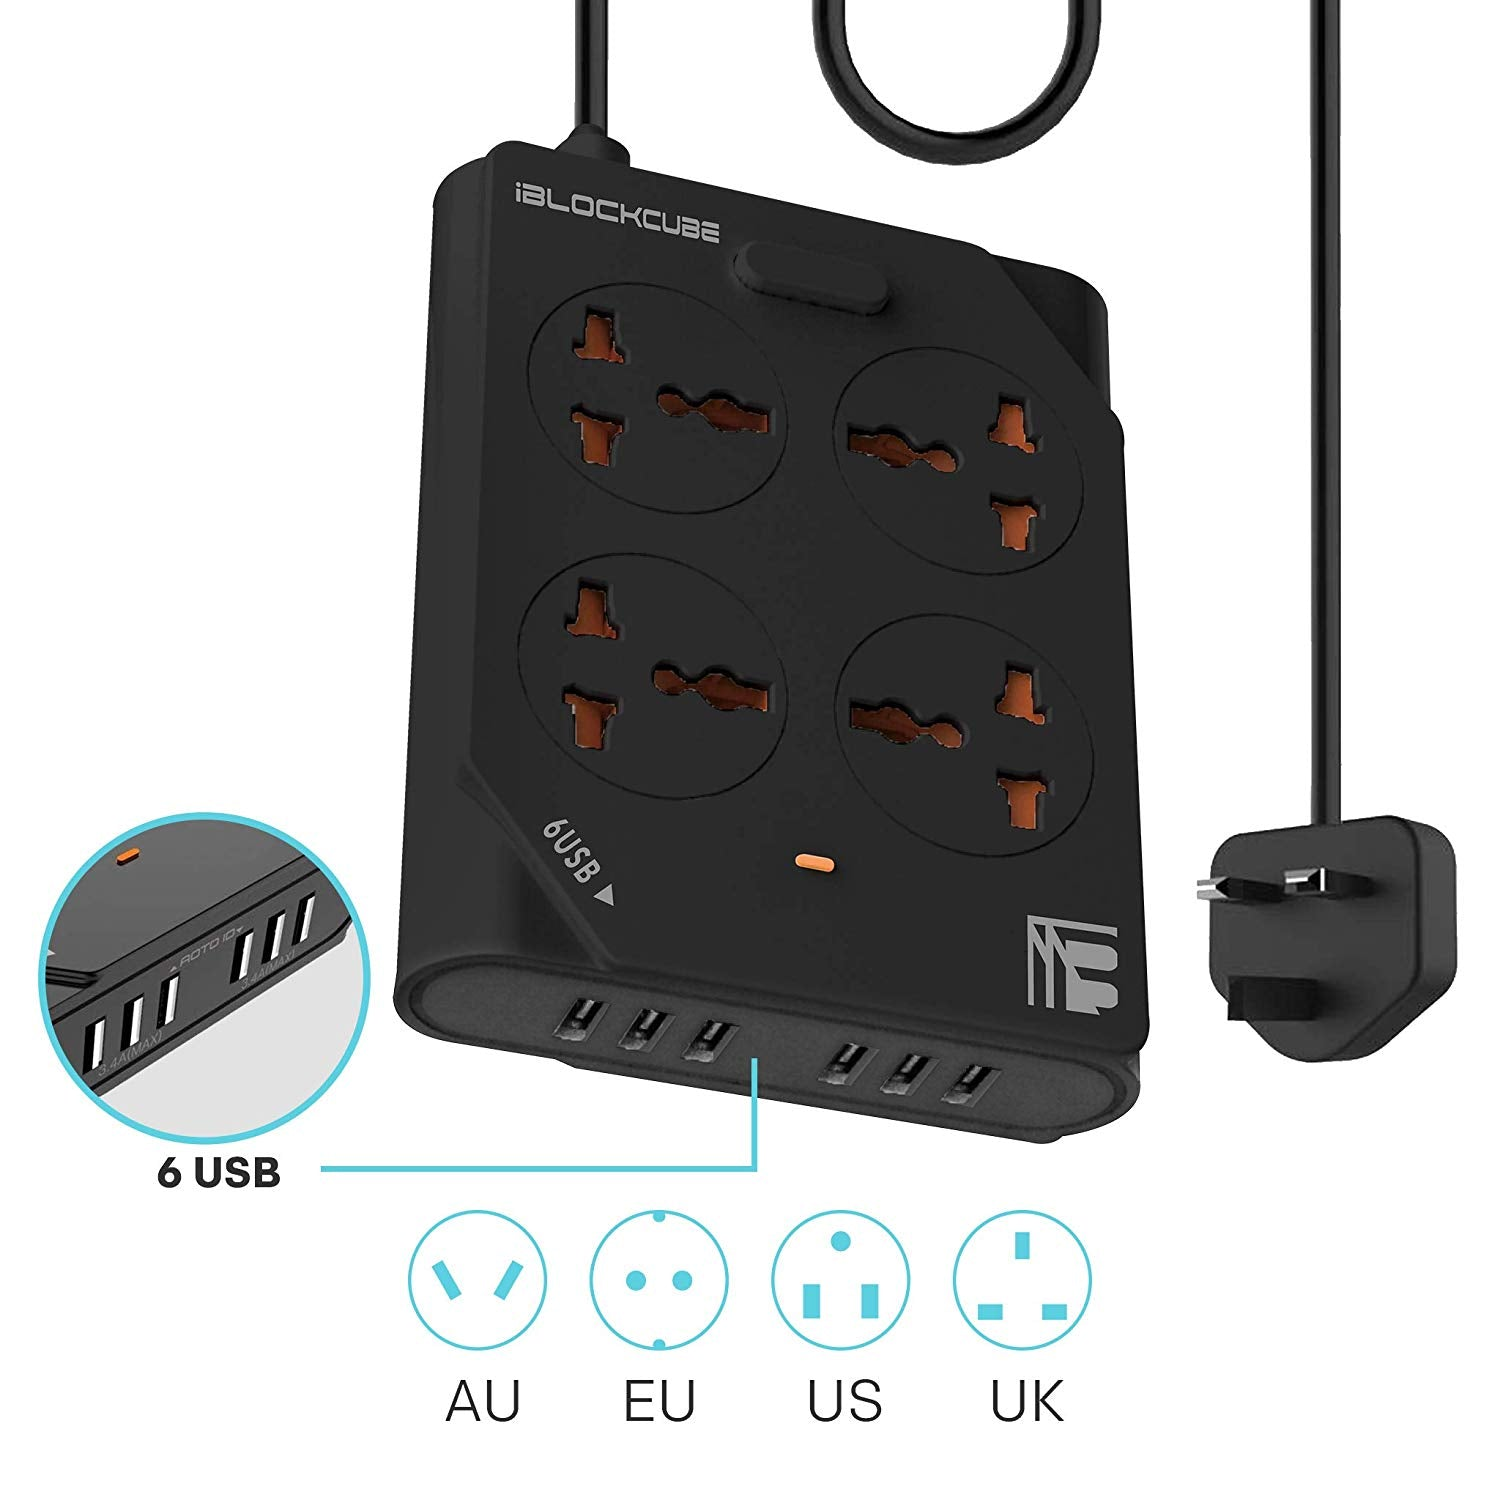 MX 4-WAY OUTLET WITH 6 USB PORTS - BLACK